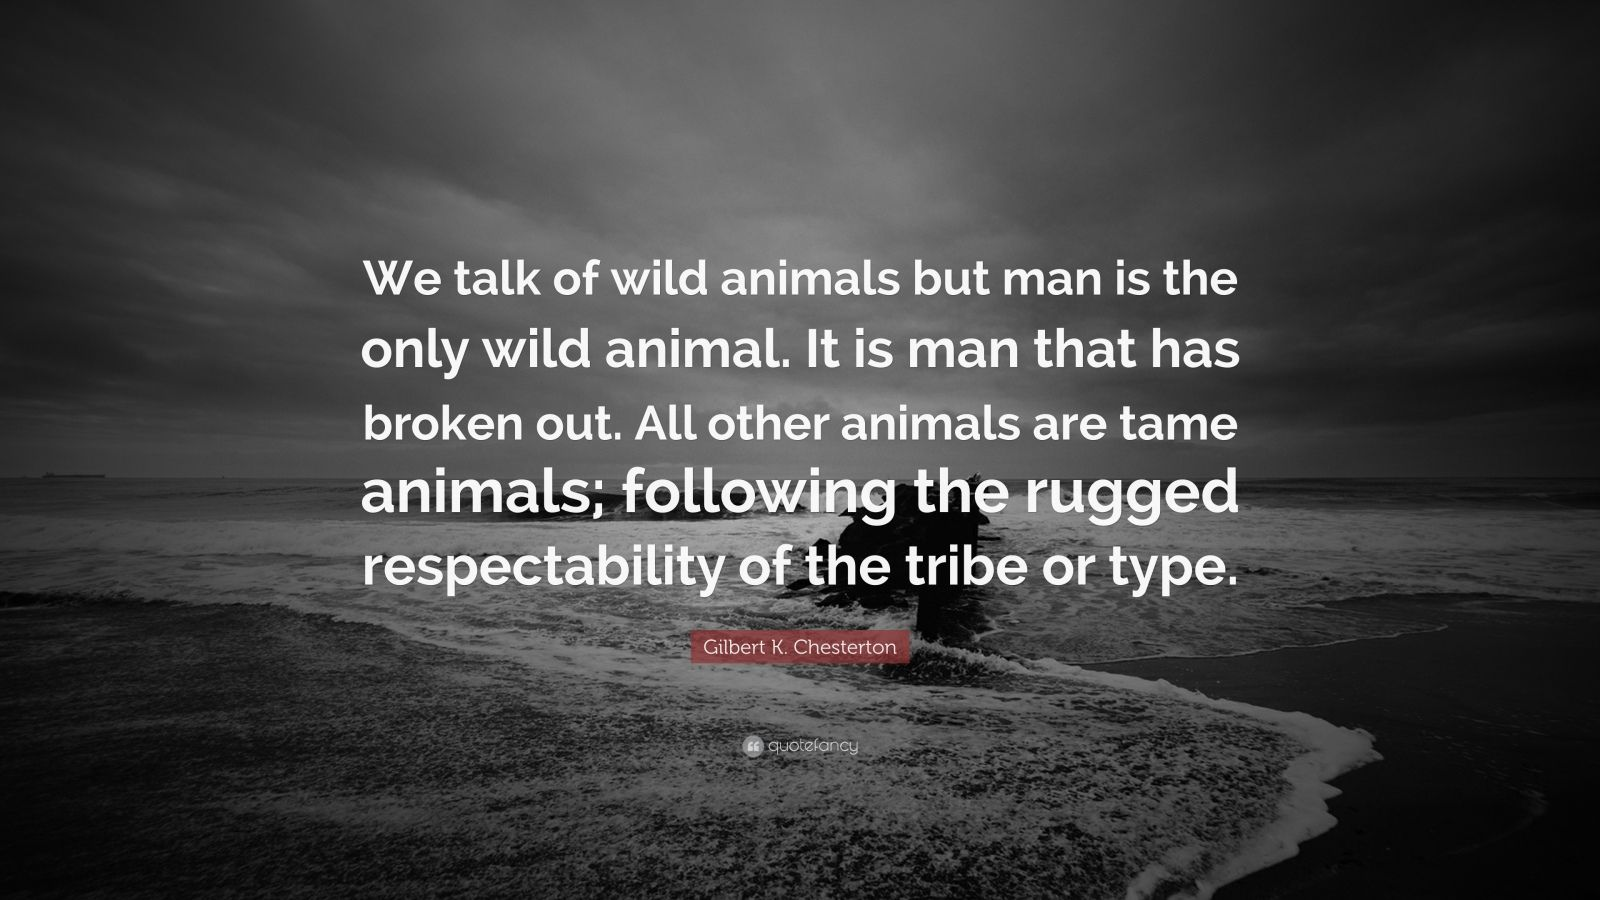 """Gilbert K. Chesterton Quote: """"We talk of wild animals but man is the only wild animal. It is man that has broken out. All other animals are tame animals; following the rugged respectability of the tribe or type."""""""